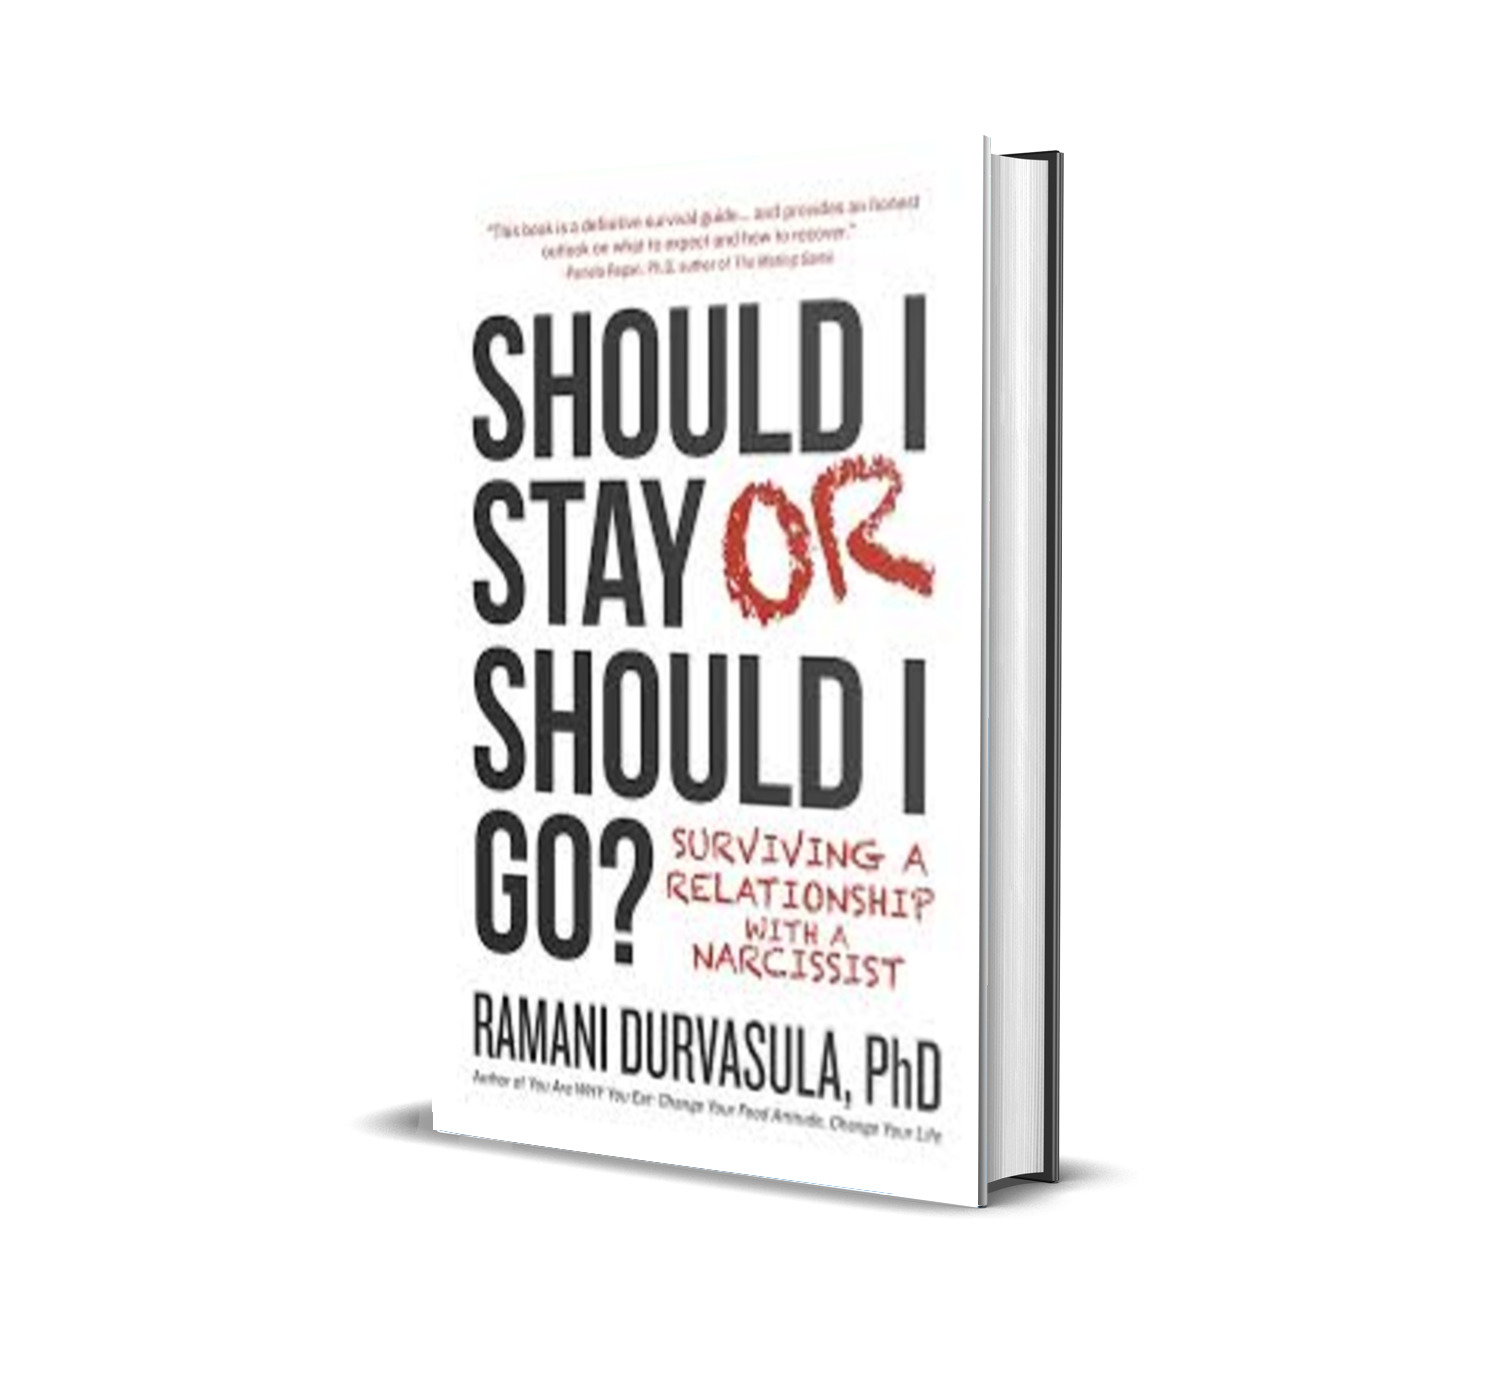 Should I stay or should I go? : surviving a relationship with a narcissist - Durvasula, Ramani